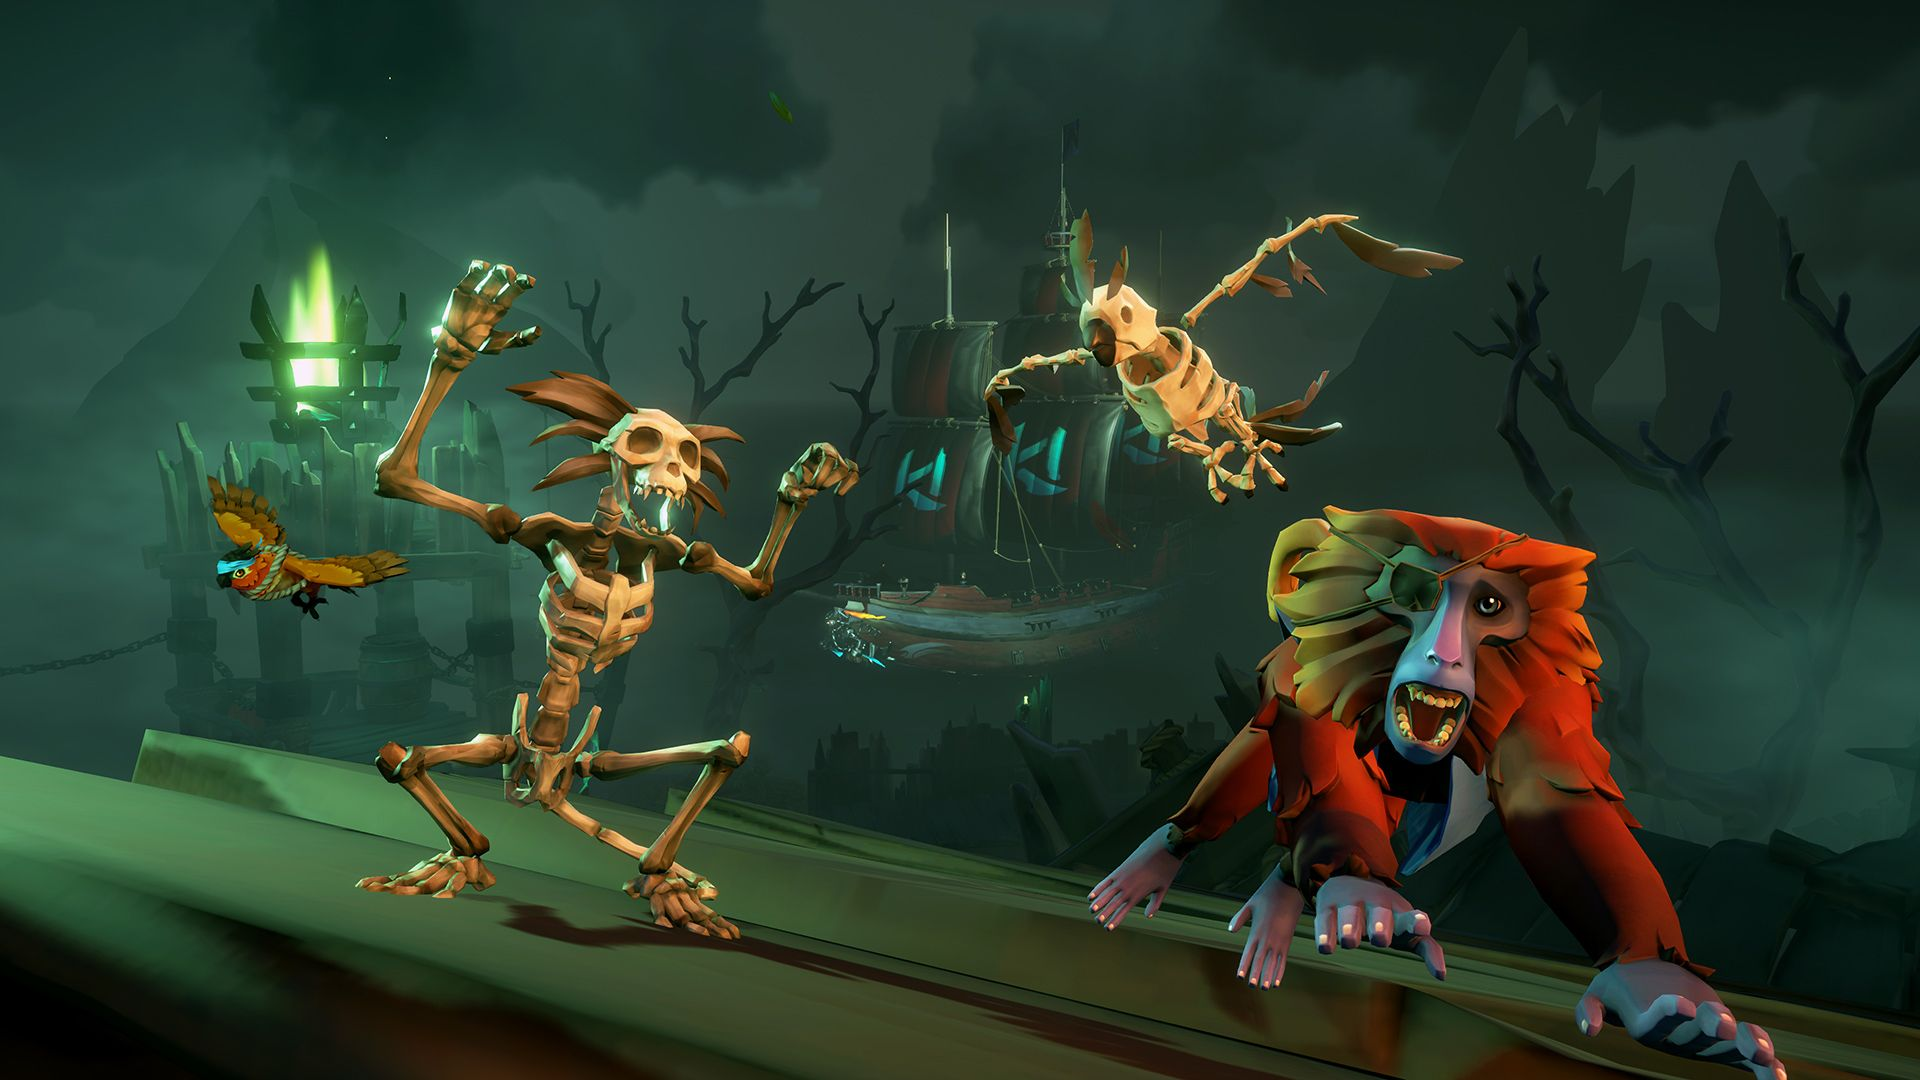 Xbox Sea Of Thieves Screenshots In 2020 Sea Of Thieves Sea Shanties Halloween Update